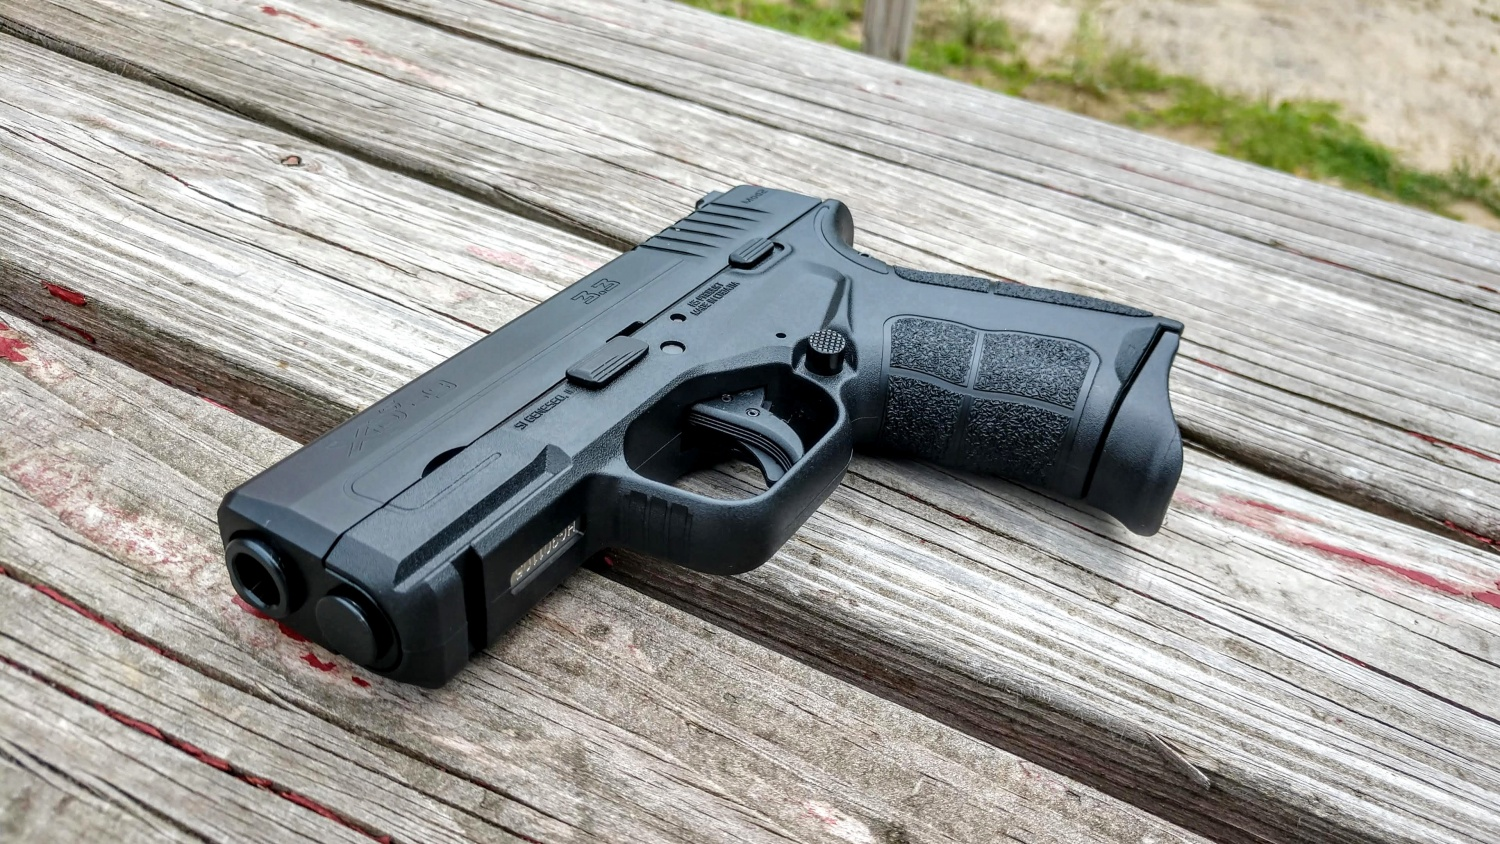 TFB Review: Springfield Armory XDS Mod.2 9mm with Fiber Optic Front Sight